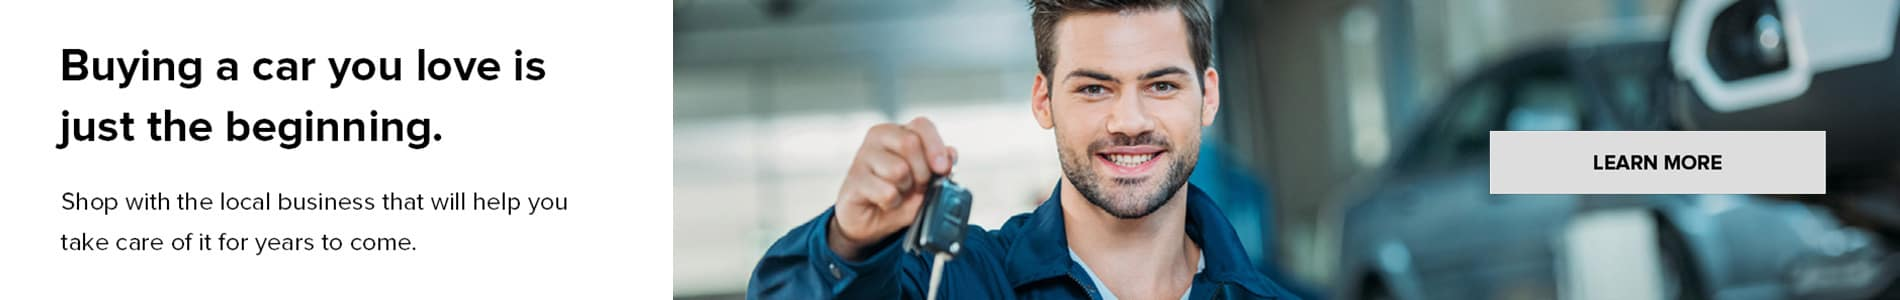 Buying a car you love is just the beginning. Shop with the local business that will help you take care of it for years to come.